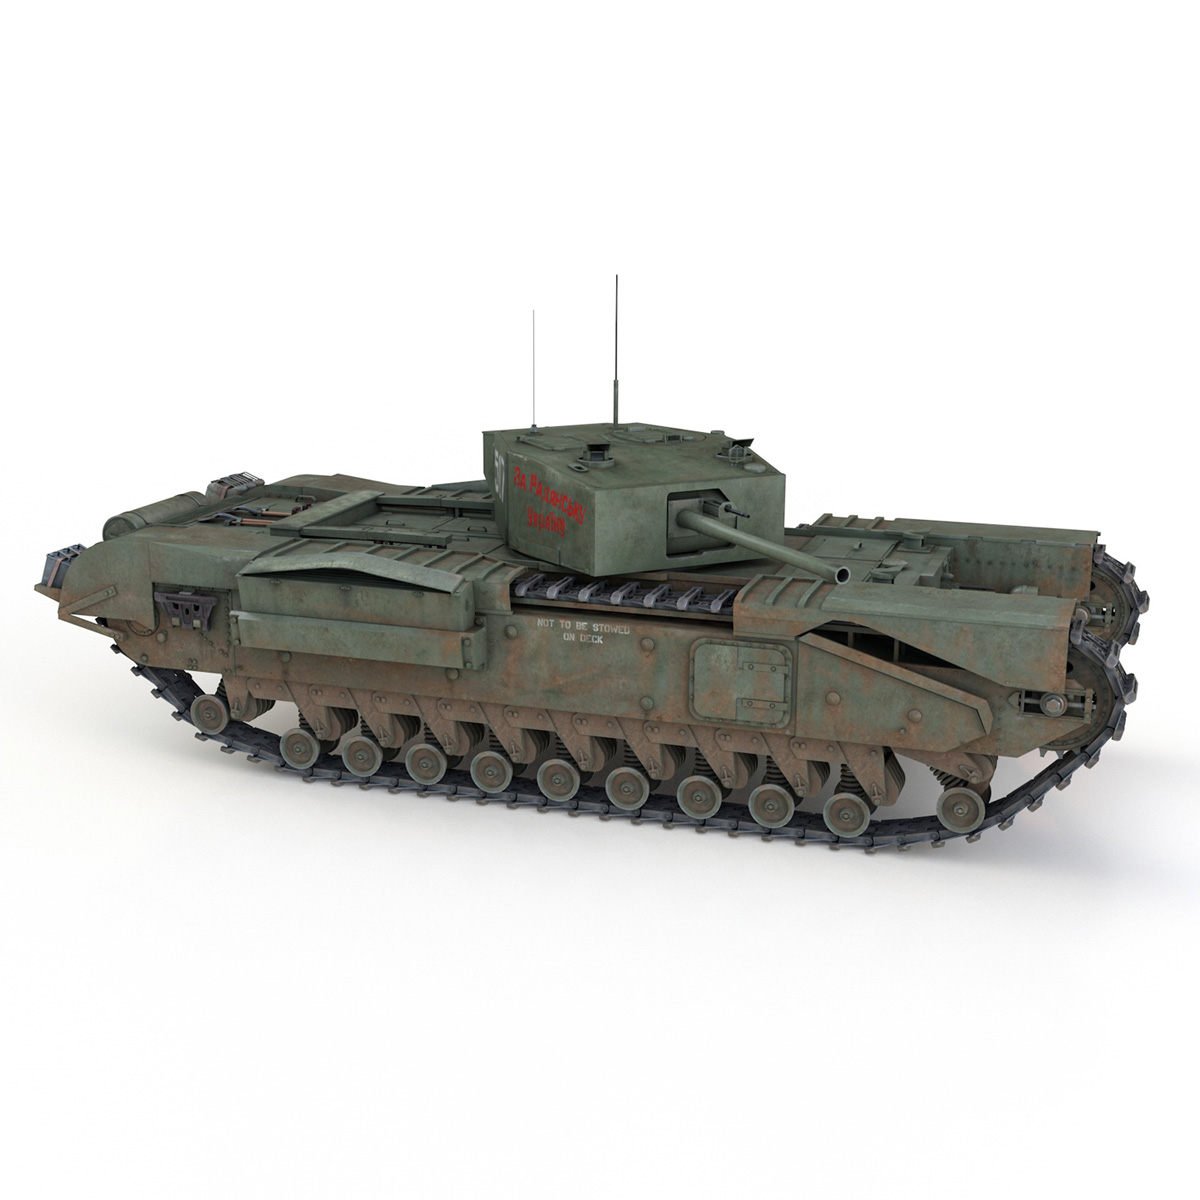 churchill mk iii - 517 - soviet army 3d загвар 3ds fbx c4d lwo obj 272979